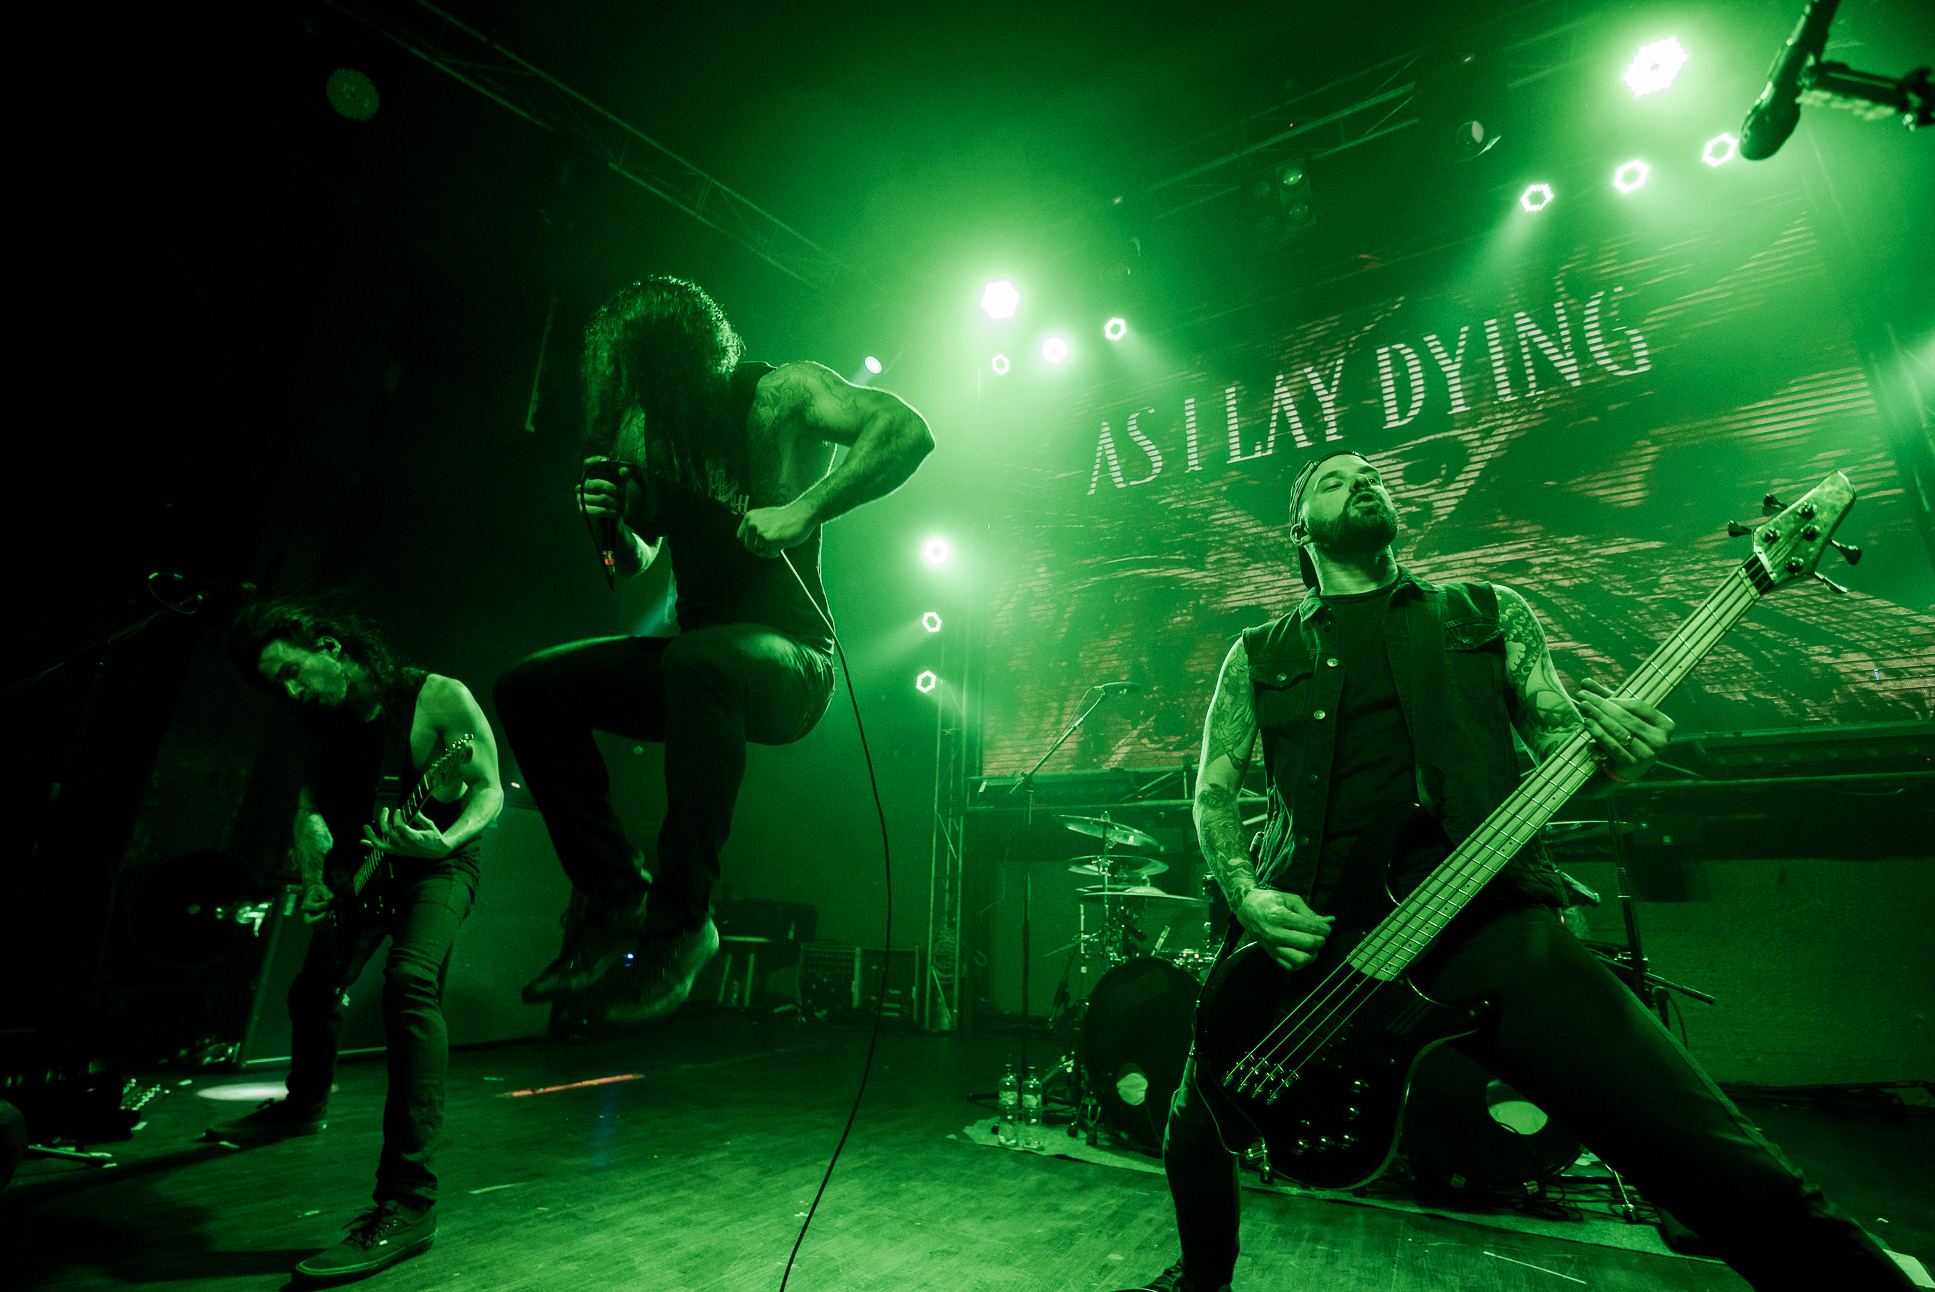 As I Lay Dying - 12 Septiembre 2019